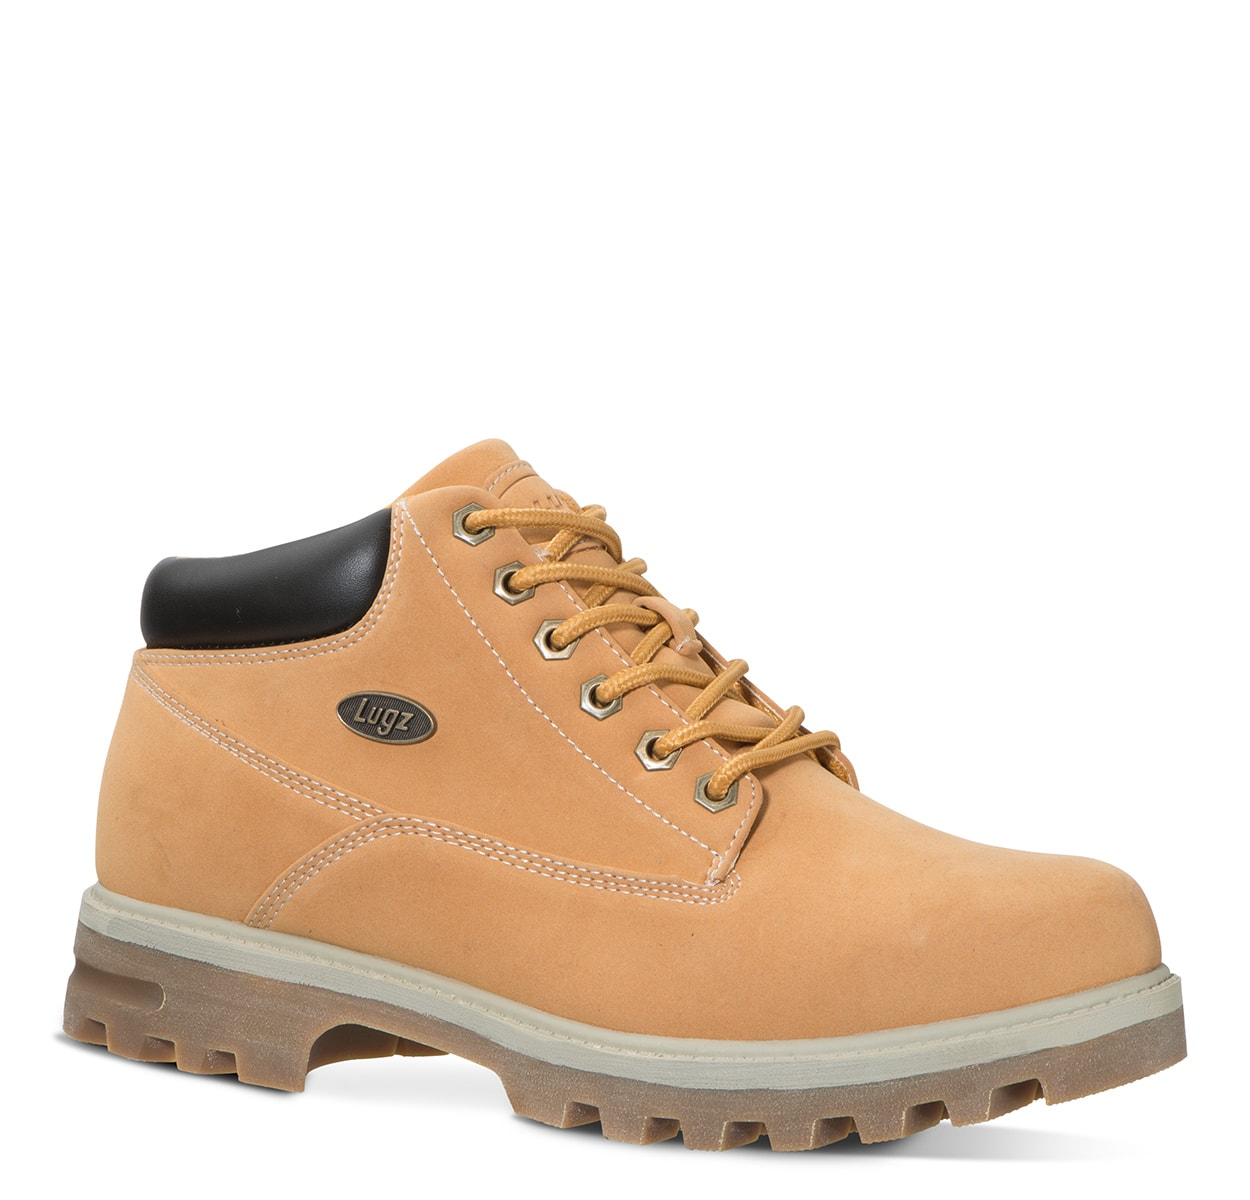 Men's Empire Water Resistant Chukka Boot (Choose Your Color: GOLDEN WHEAT/CREAM/BARK, Choose Your Size: 6.5)